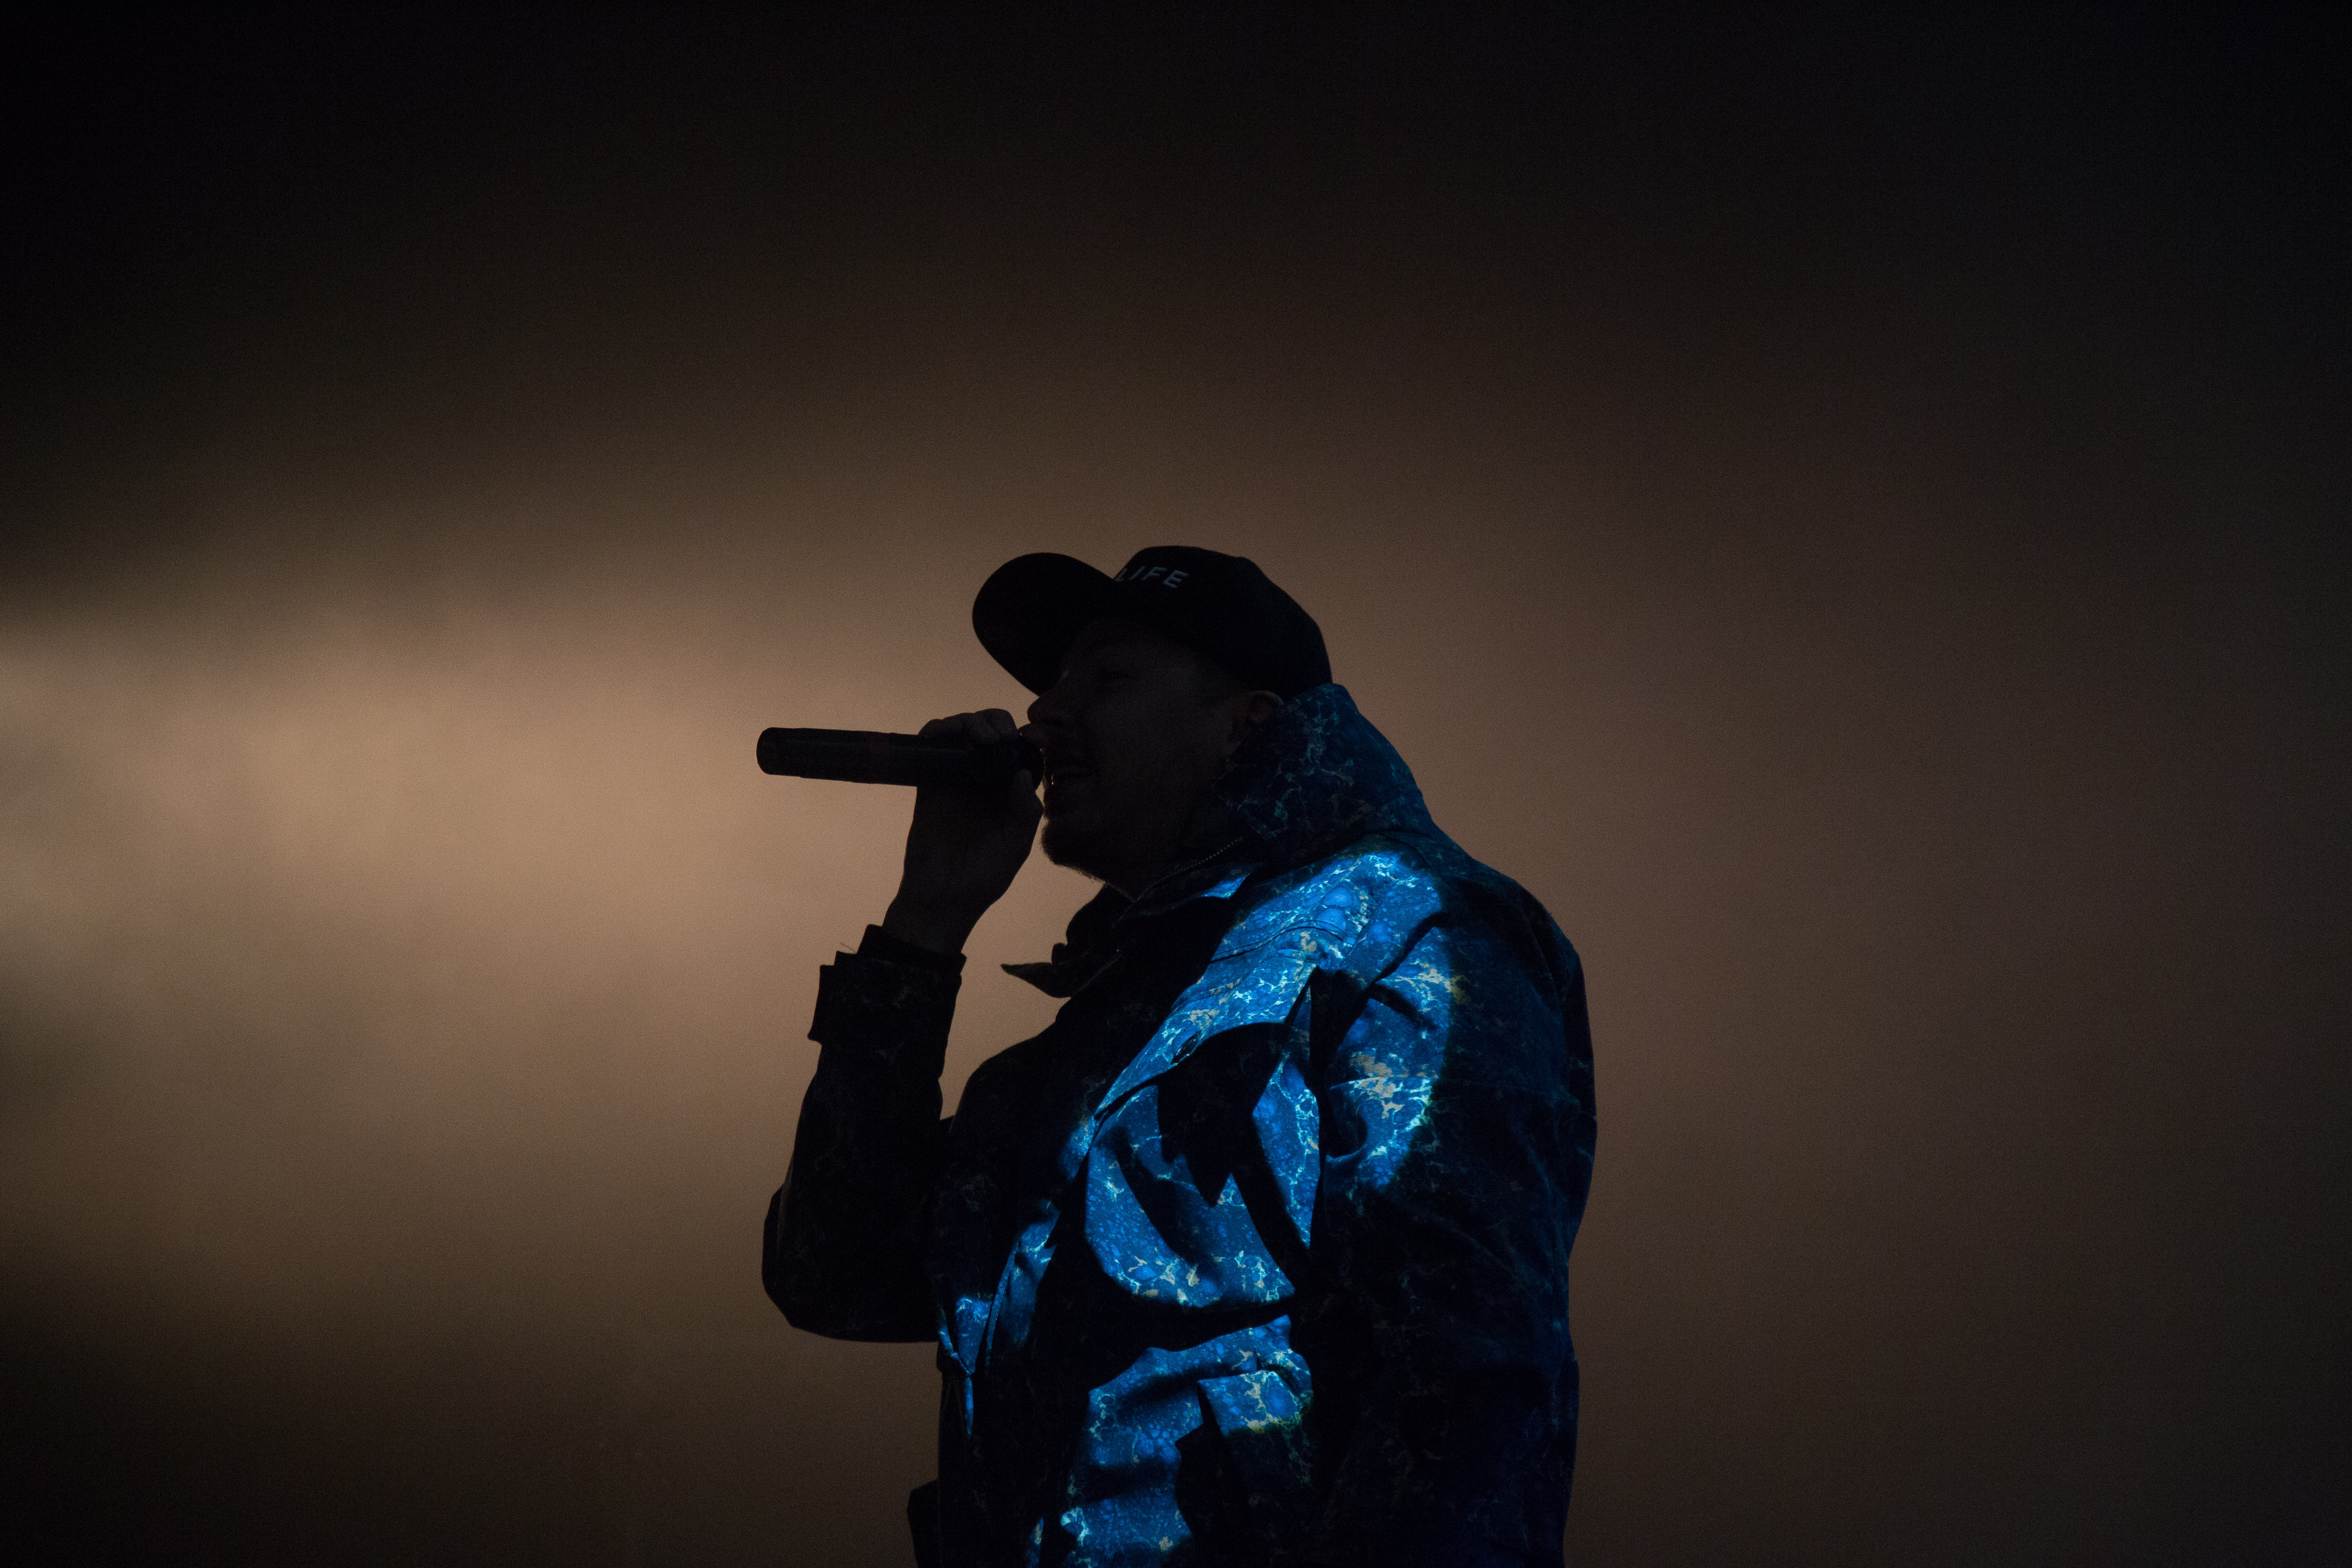 A silhouette of a musician in a cap performing with a microphone against pale smoke in the background